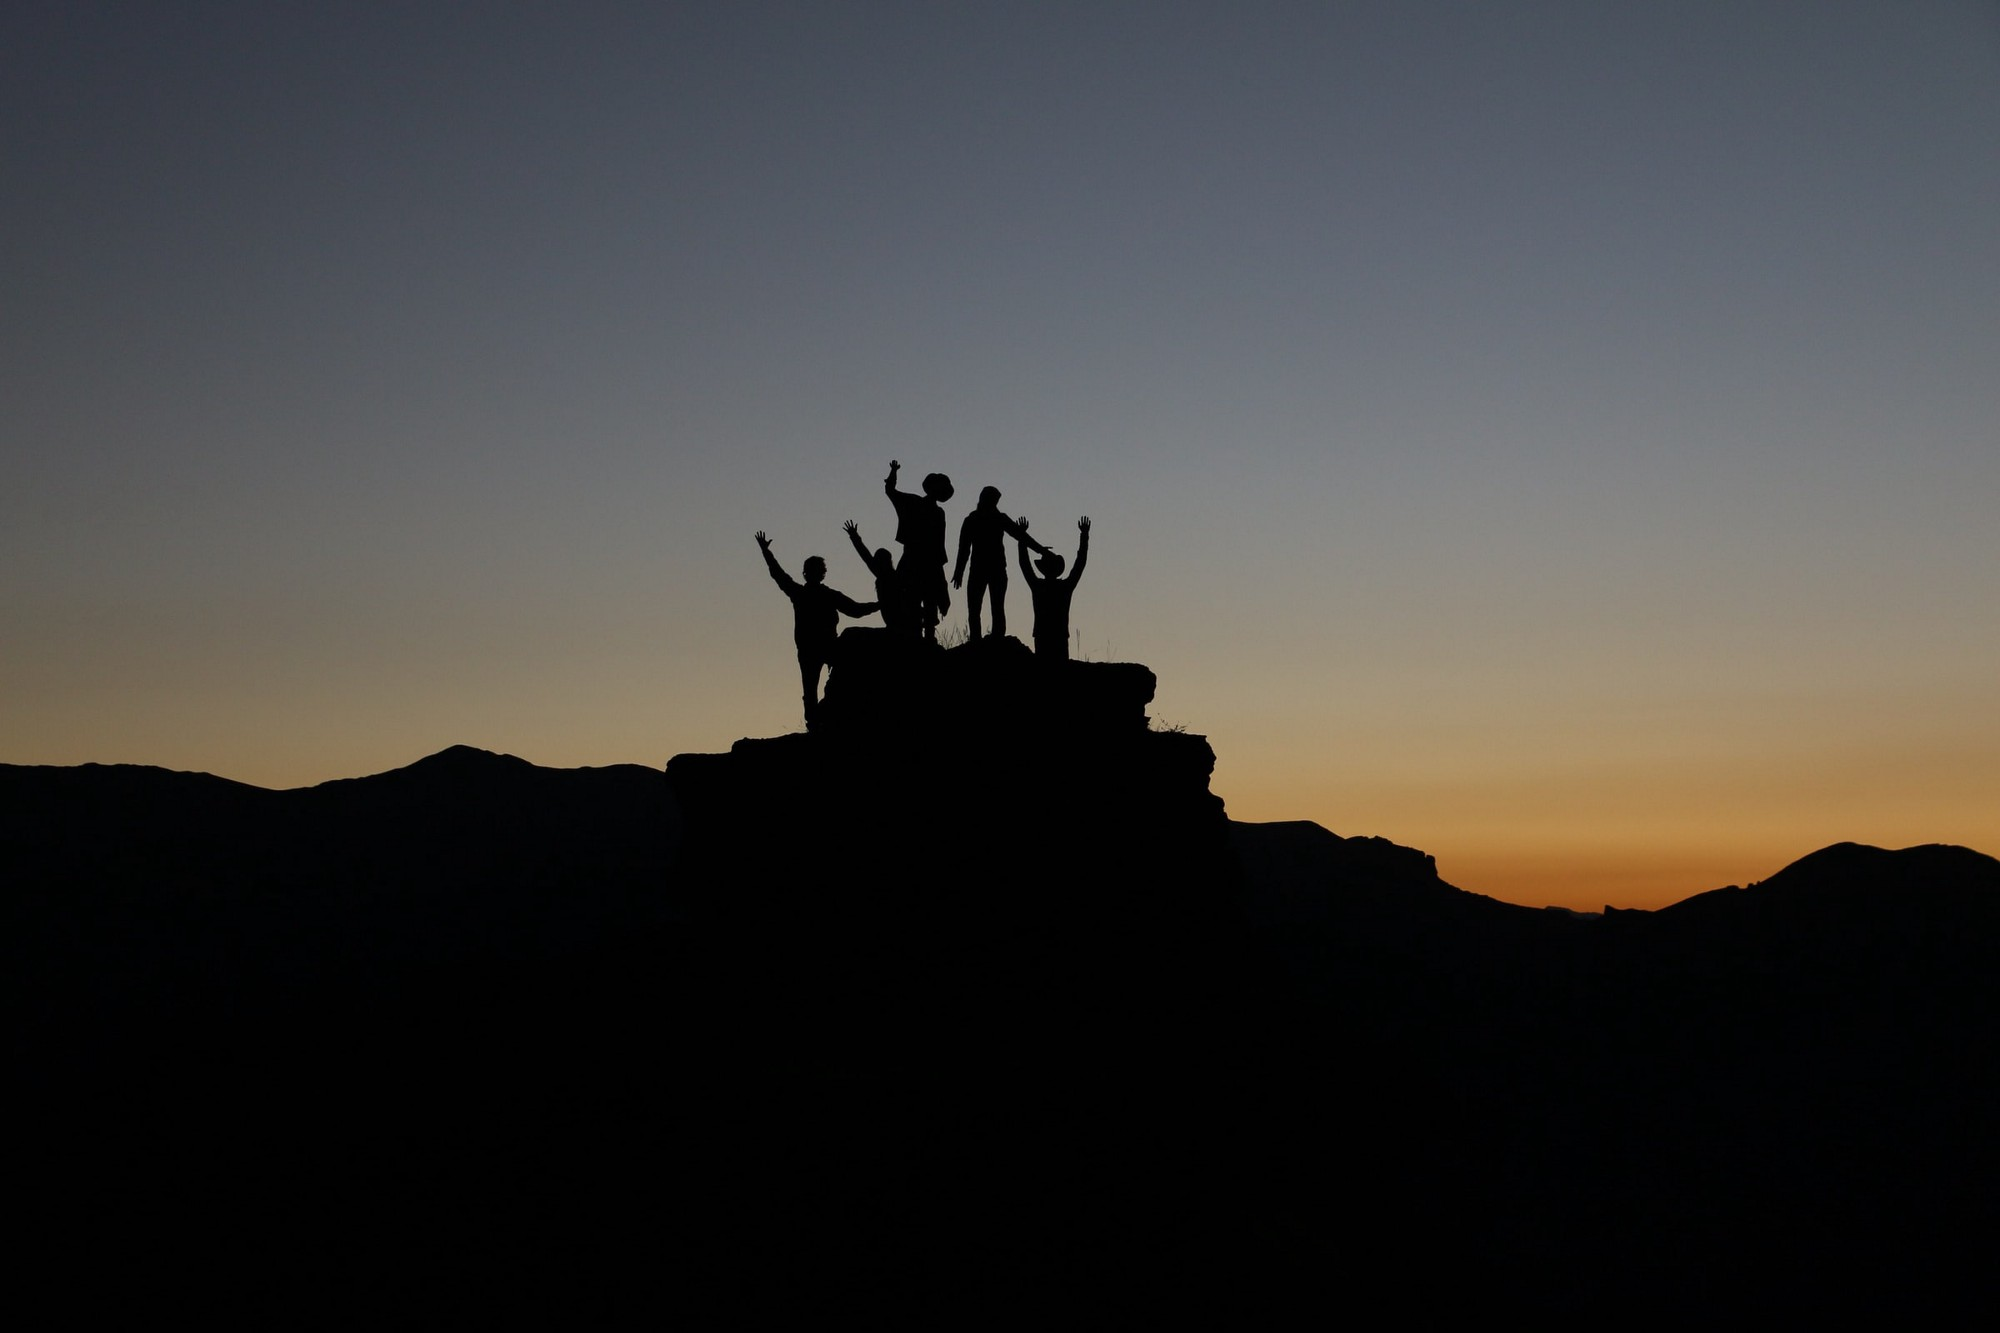 Picture of a group of people, a team, celebrating in the top of a mountain